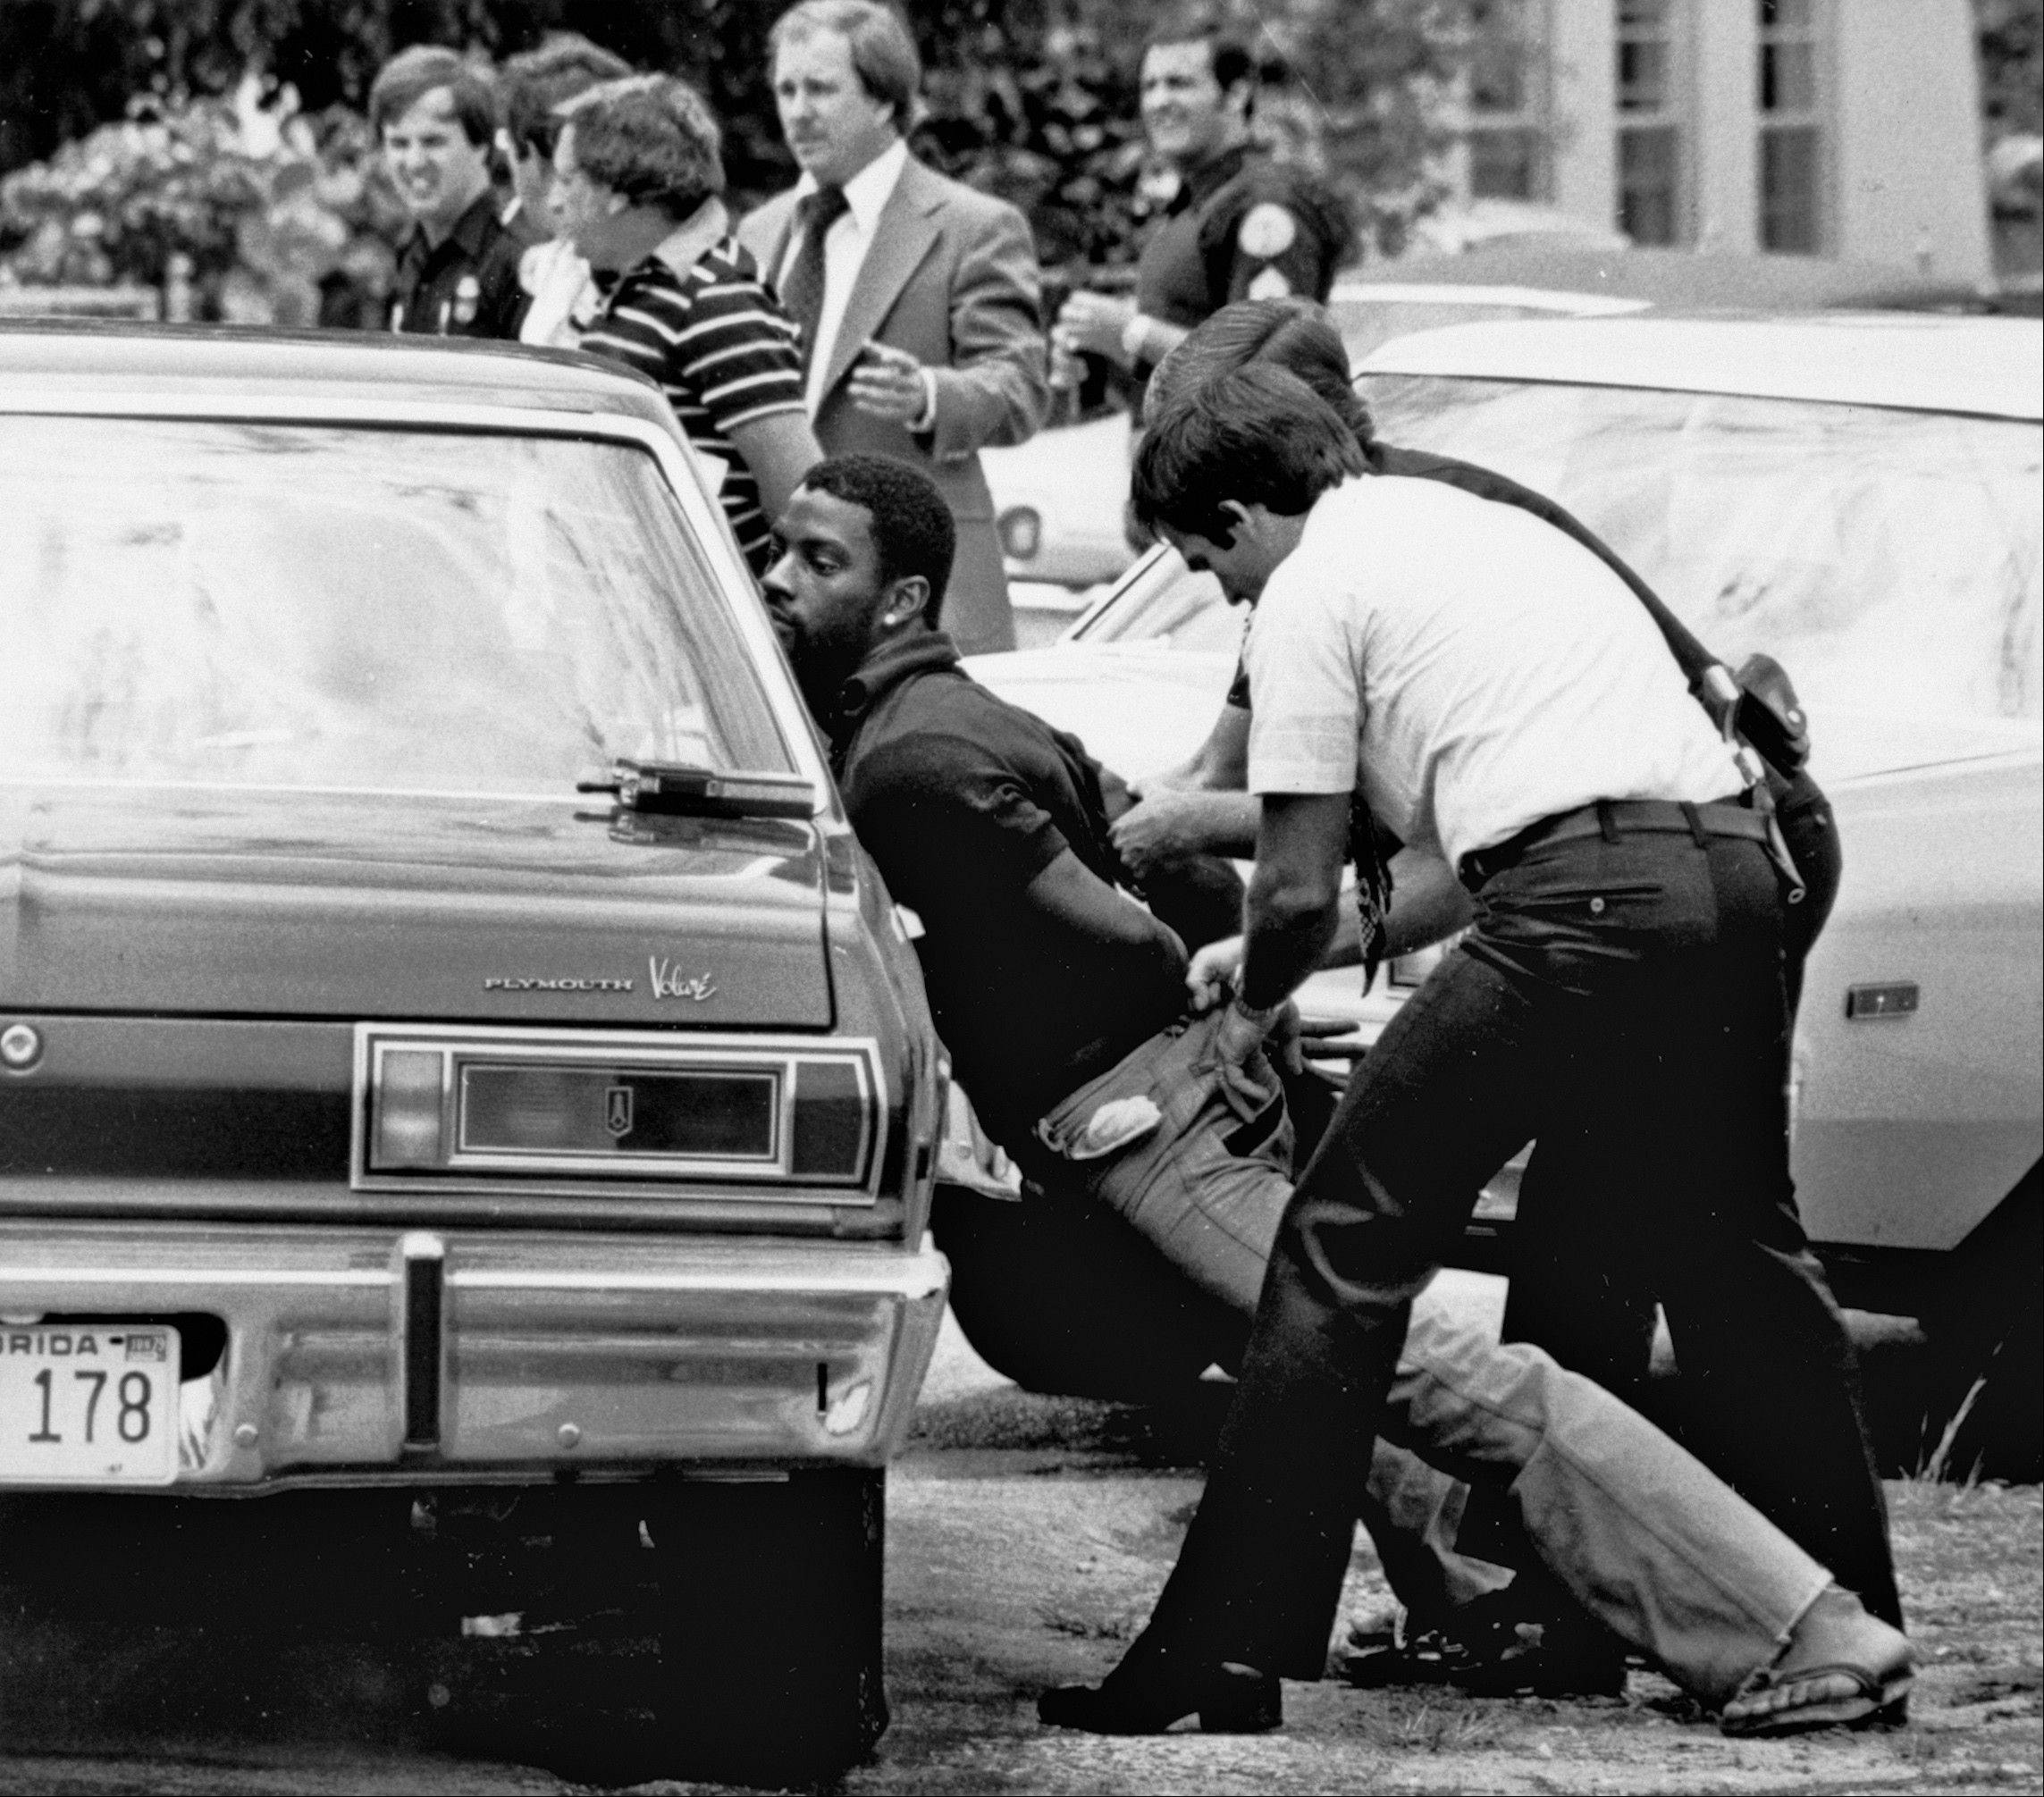 In this 1979 photo, police handcuff a suspect during a drug raid in Miami. Police said eight were arrested and marijuana was seized.